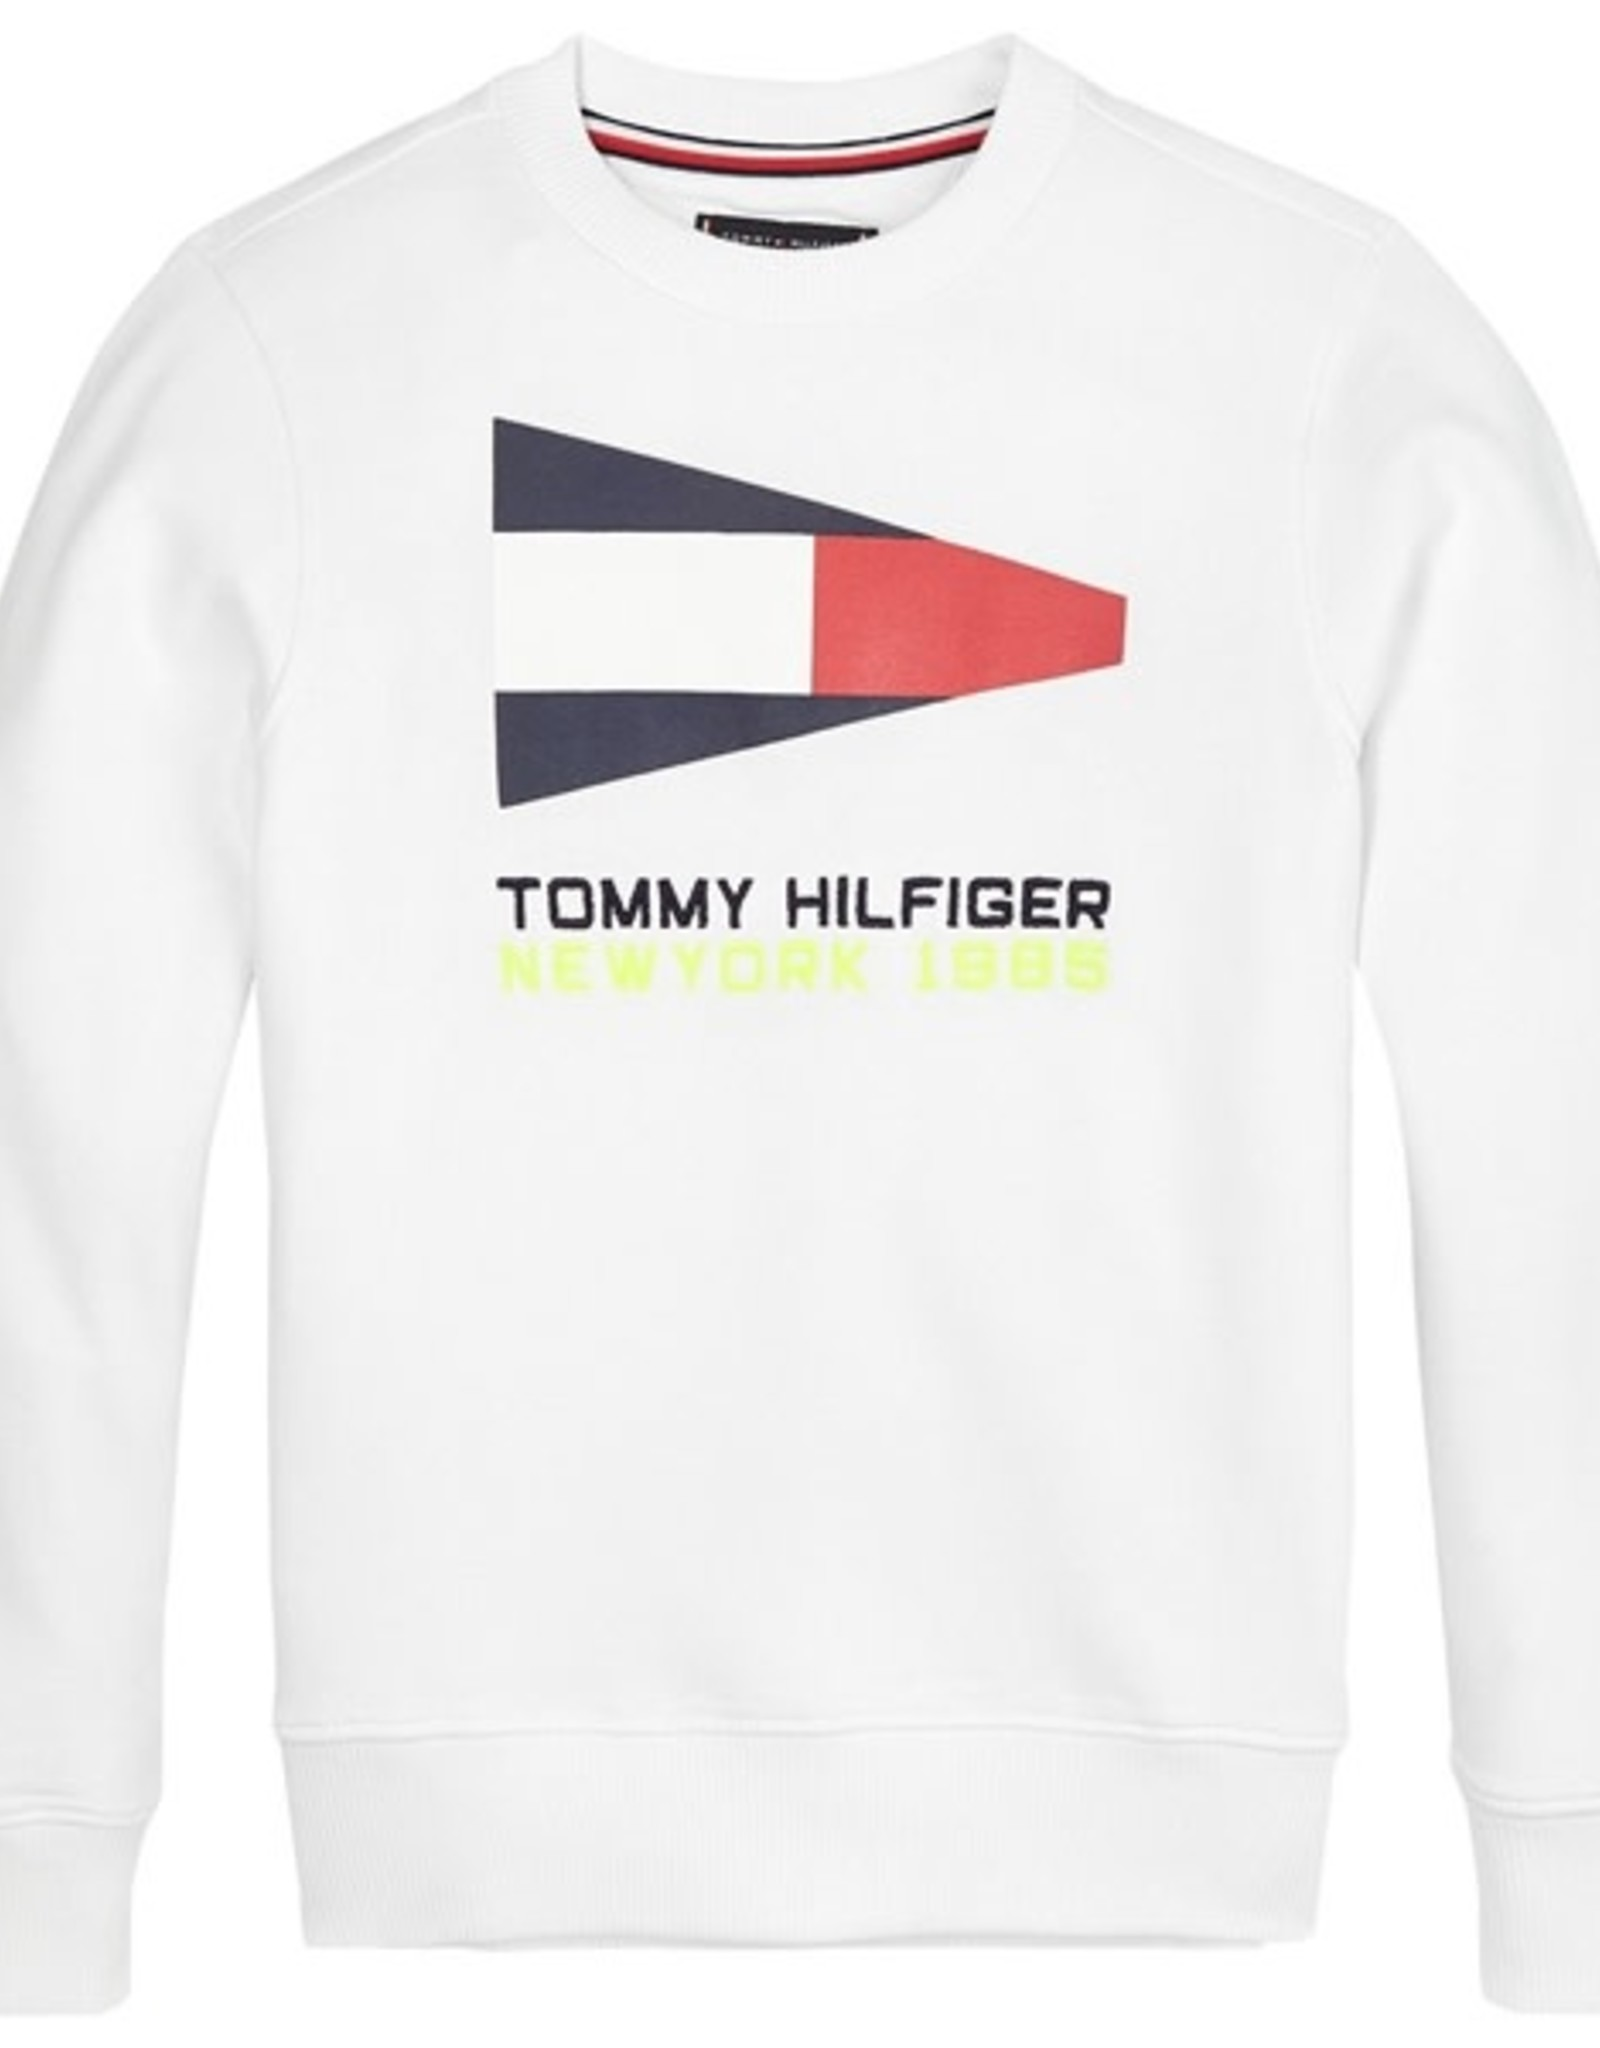 Tommy Hilfiger Sailing Flag Graphic Sweatshirt